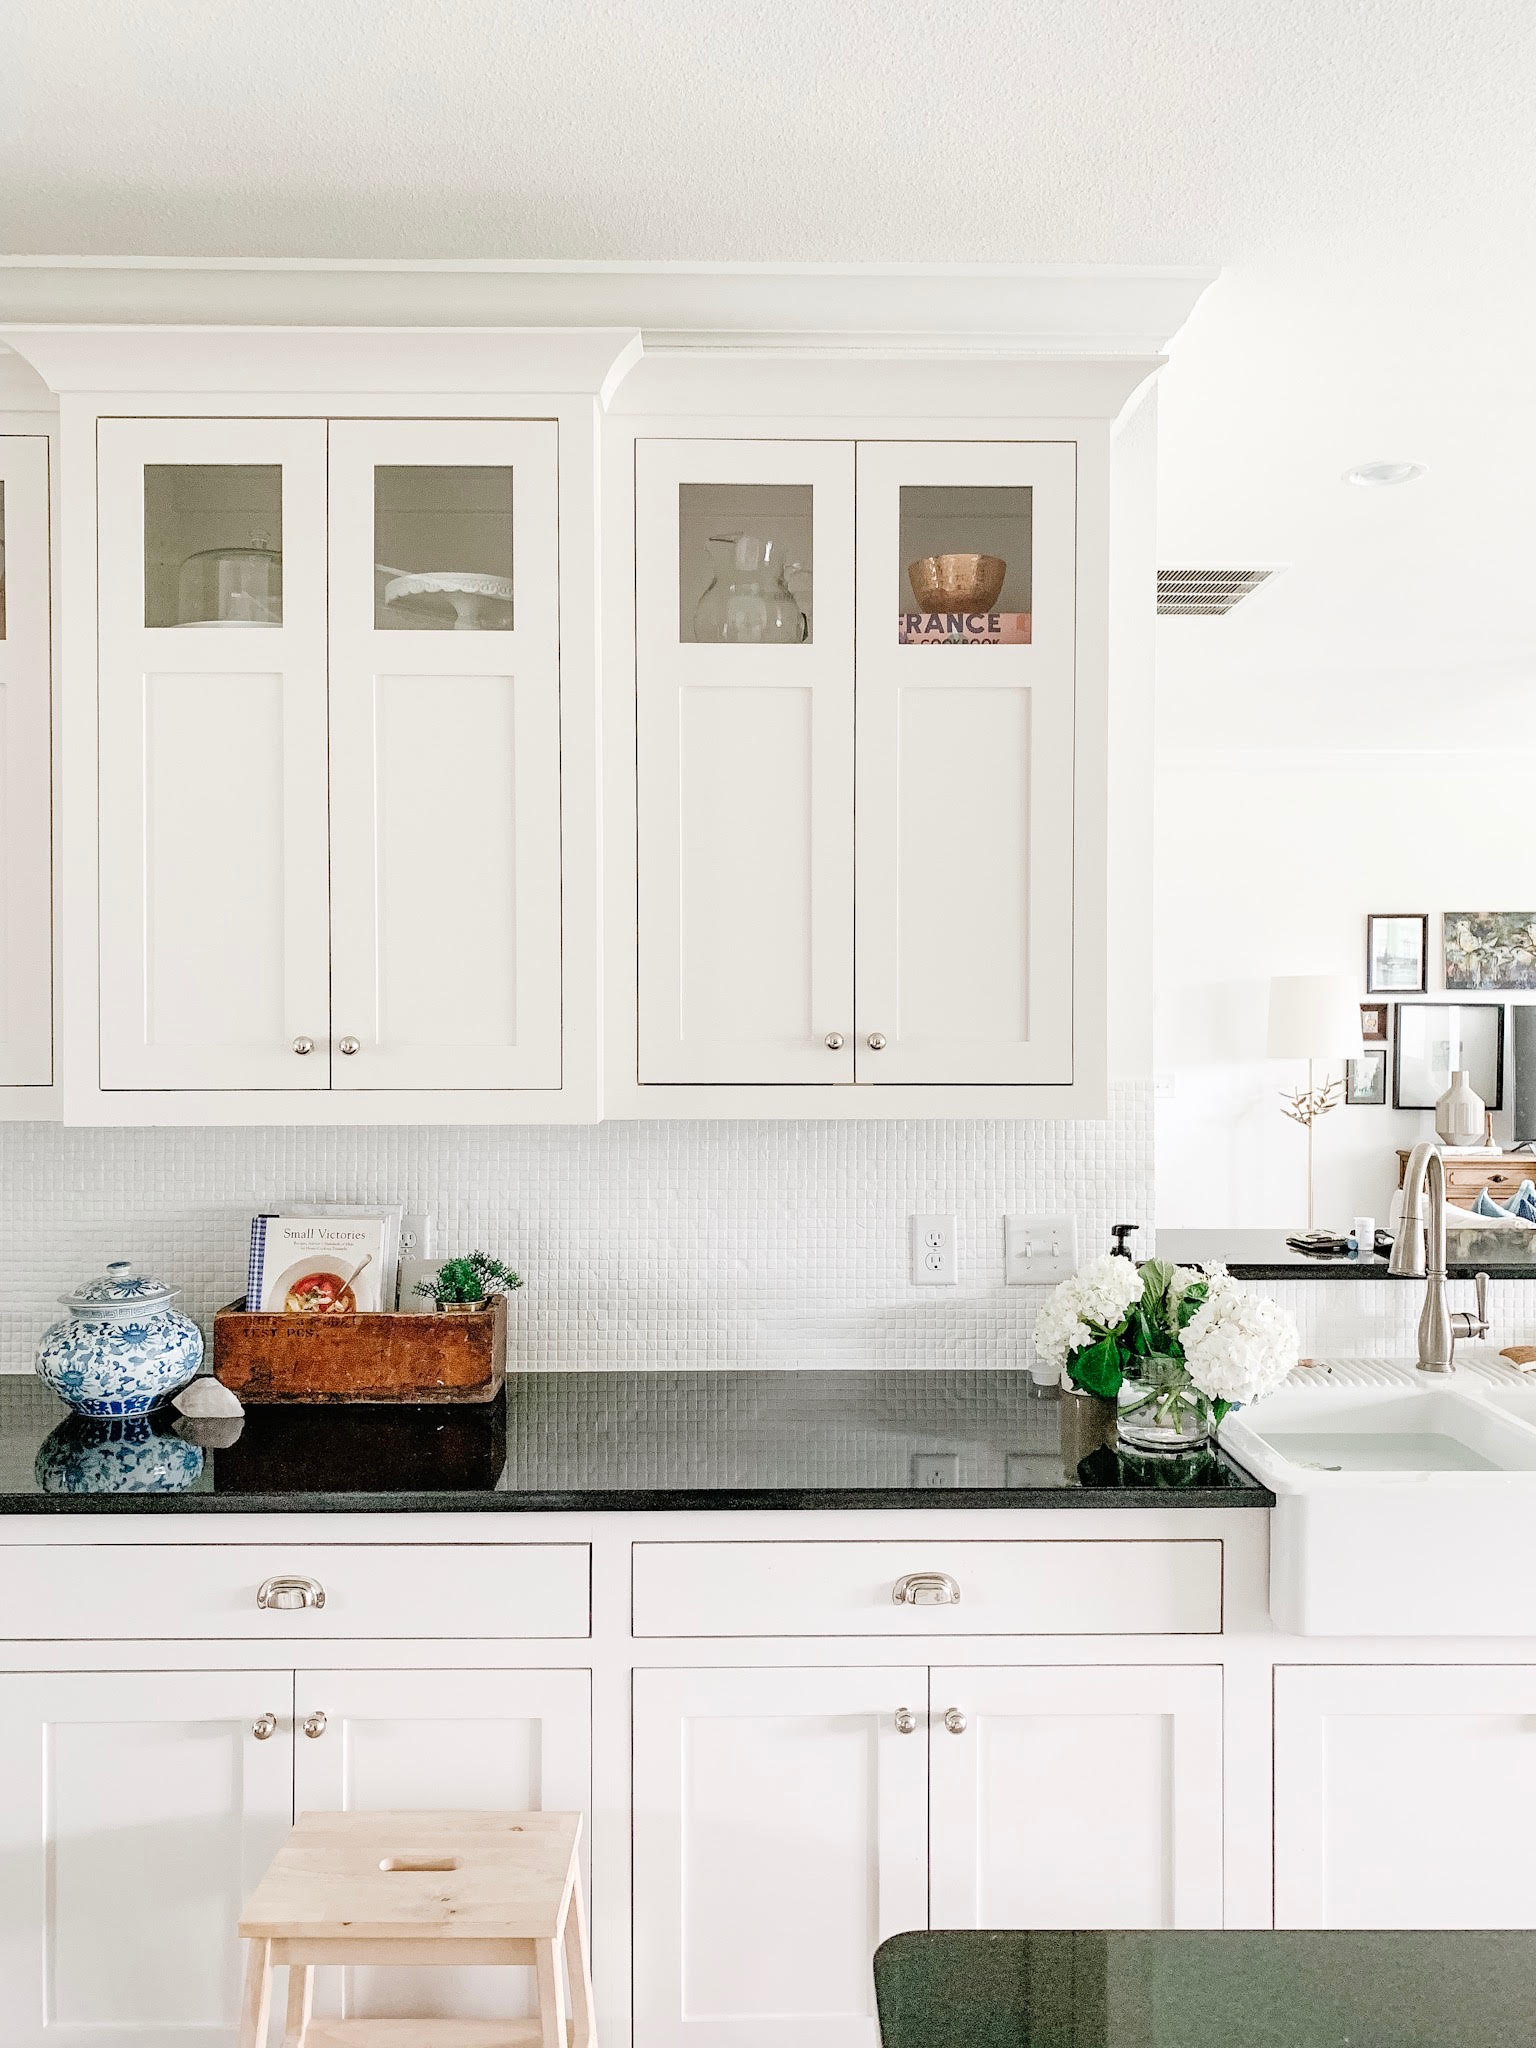 - How To: Paint Your Tile Backsplash